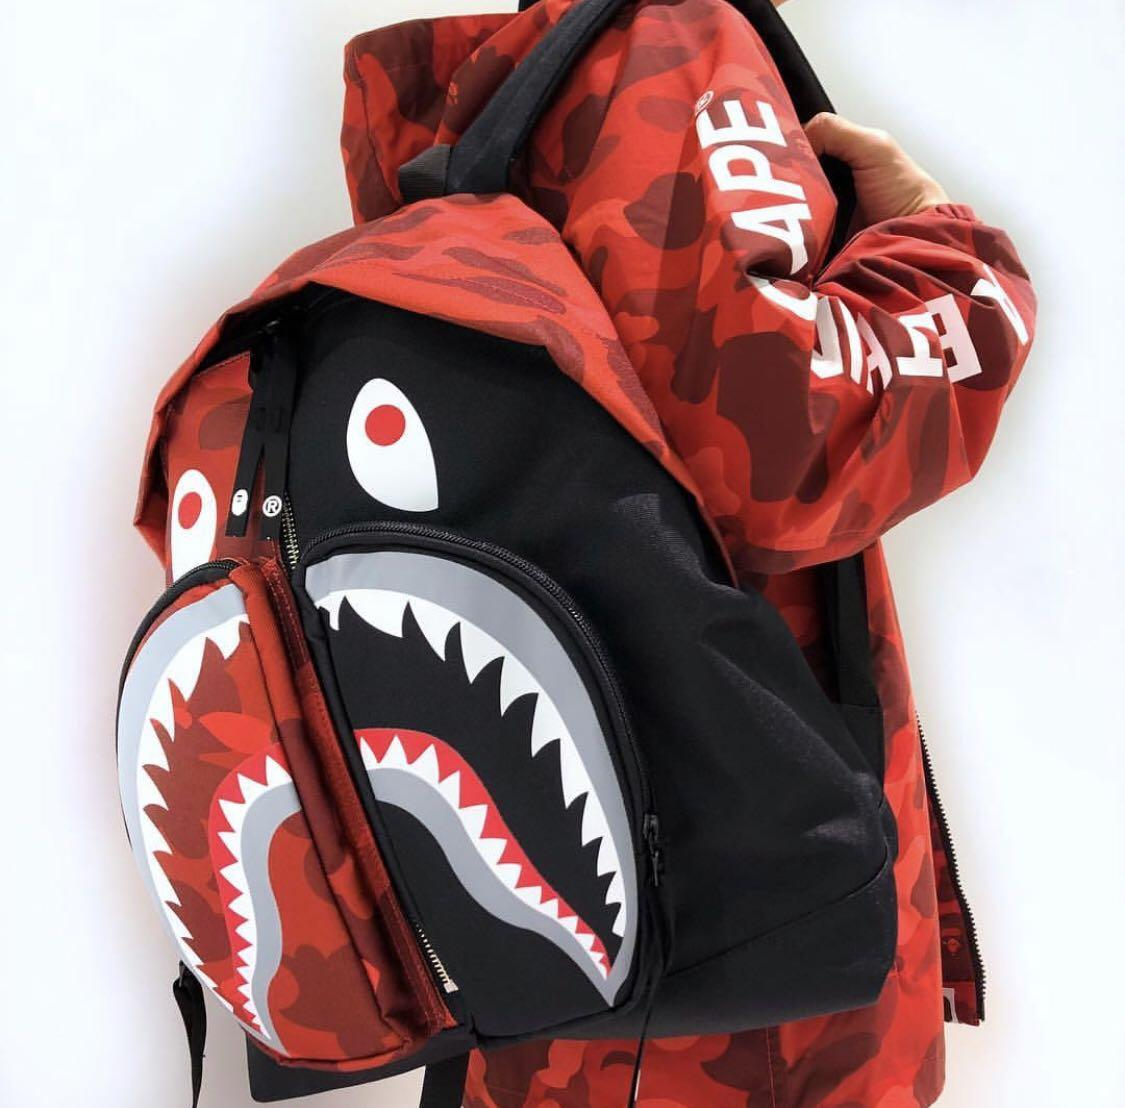 Bape Shark Backpack >> Bape Backpack Bape Shark Day Pack Bape Color Camo Shark Day Pack